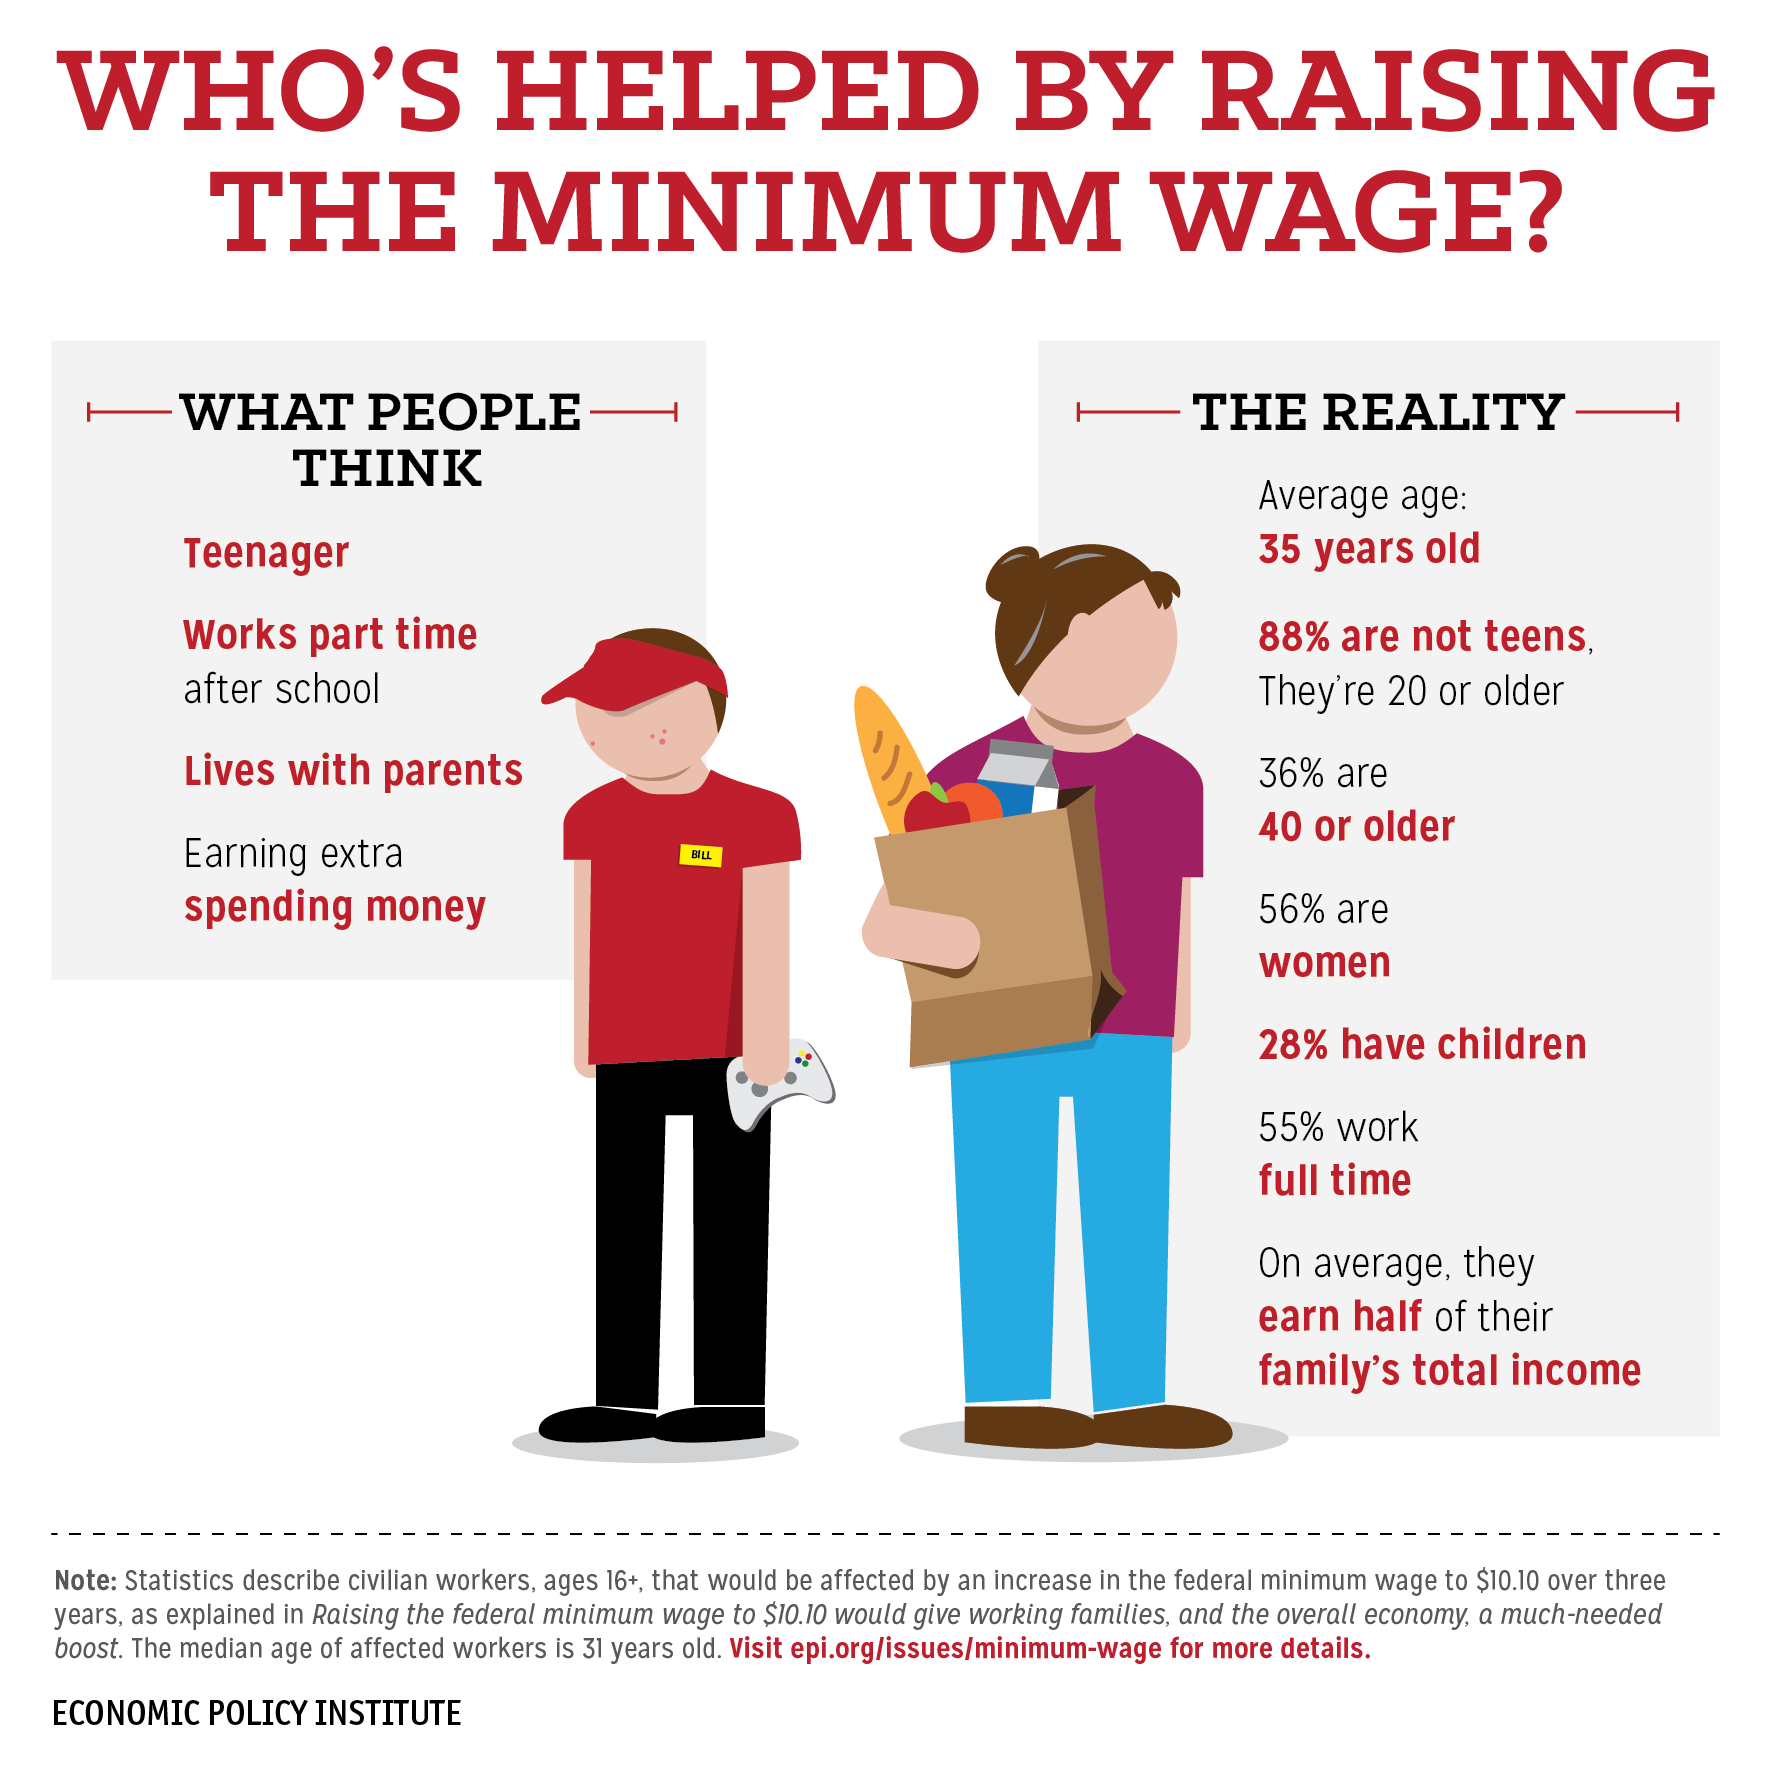 IMAGE(http://www.epi.org/files/2013/EPI-low-wage-workers-reality-8-28-2013-2-54-01.png)